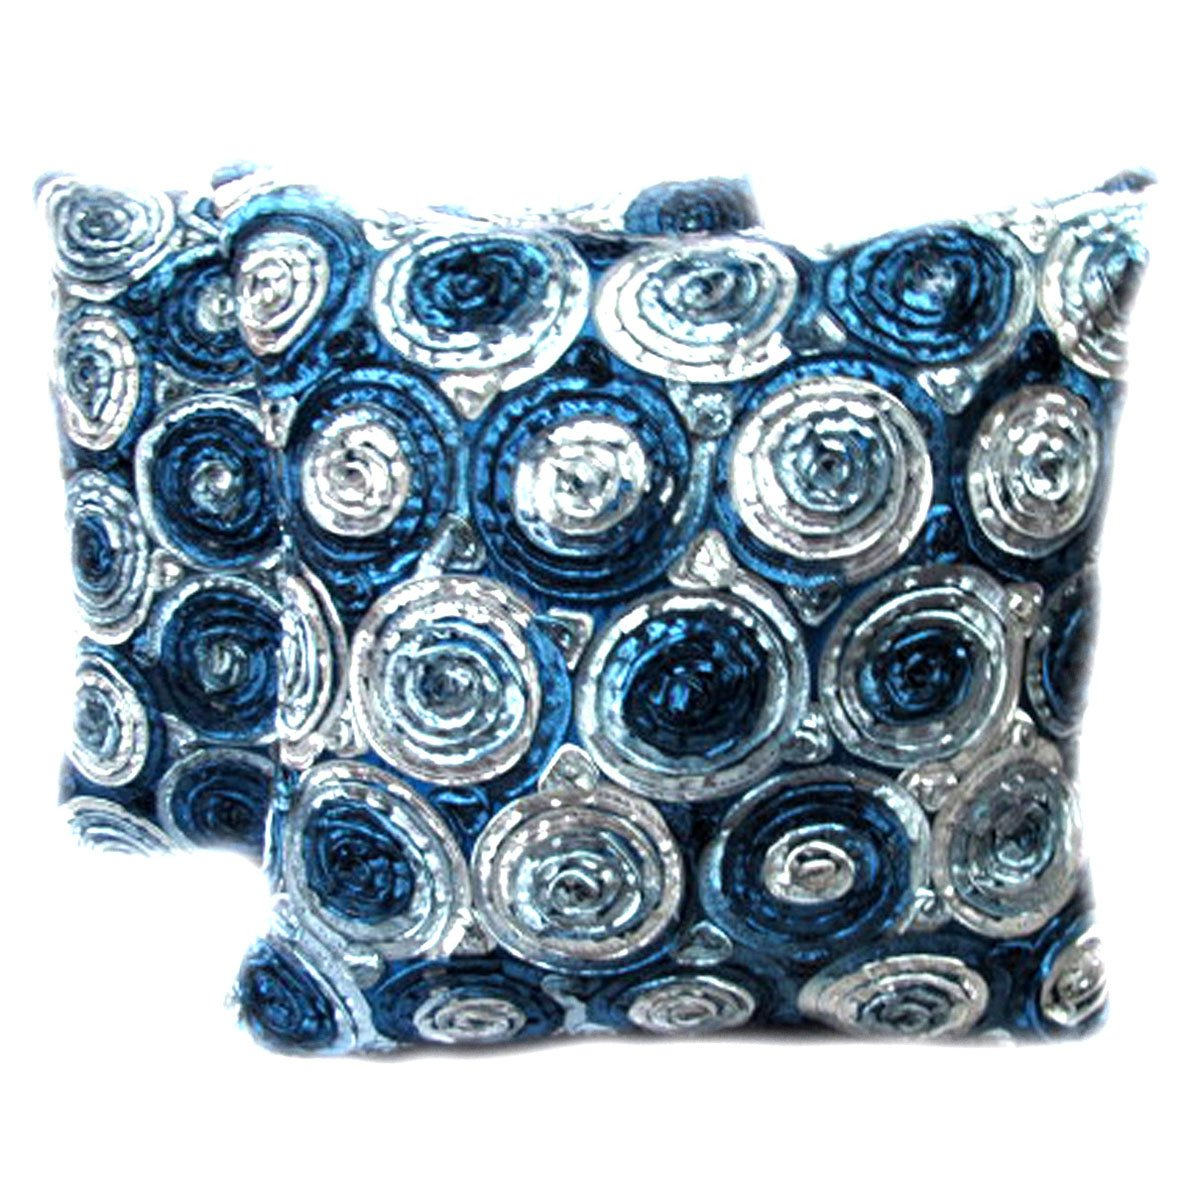 Beautiful, One Pair Two Tone 3d Bouquet of Blue Roses Throw Cushion Cover/pillow By Satin and Thai Silk for Decorative Sofa, Car and Living Room by Night Bazaar